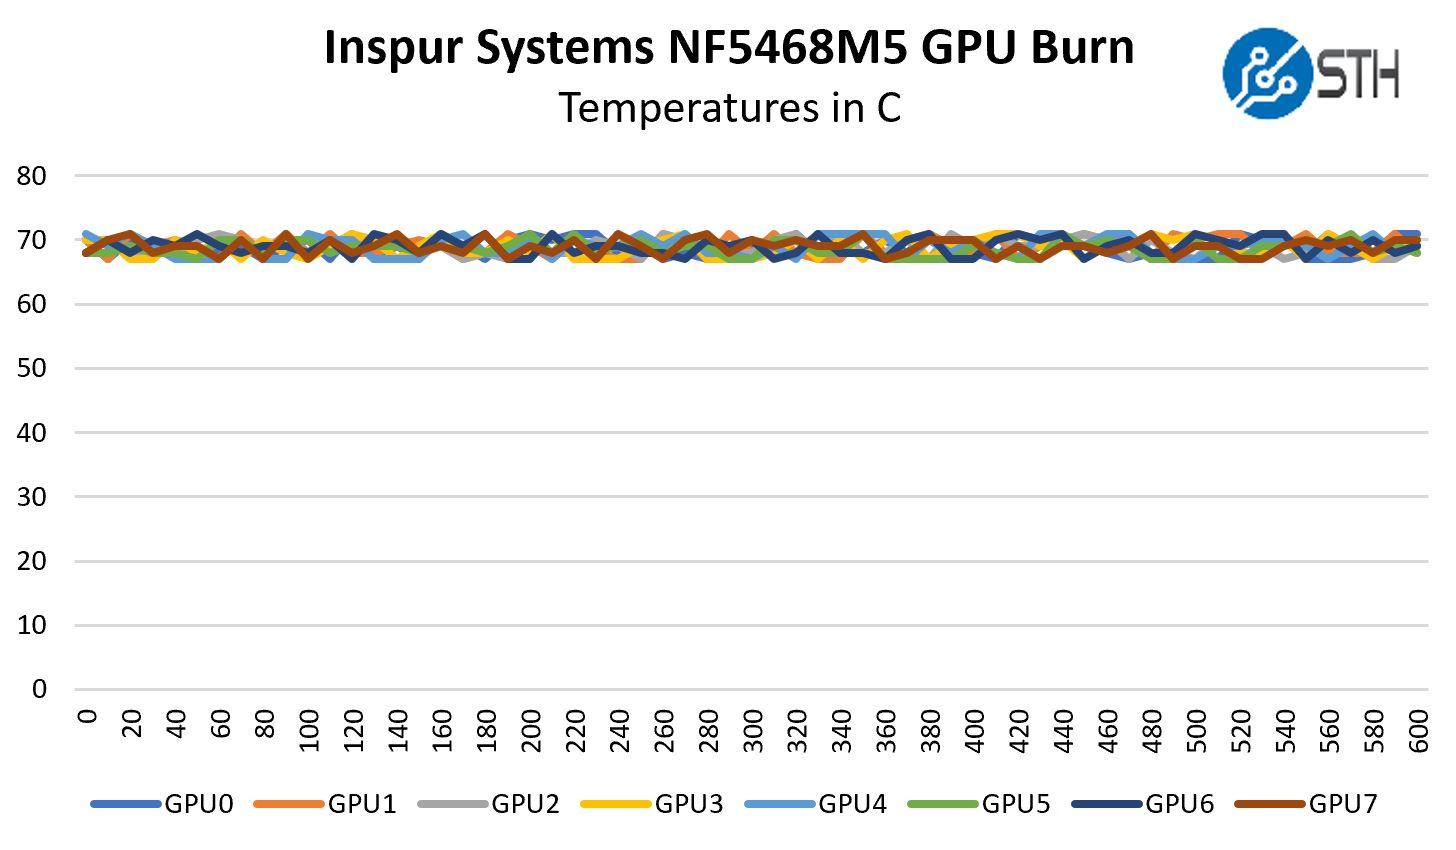 Inspur Systems NF5468M5 GPU Burn Temperature Over Time